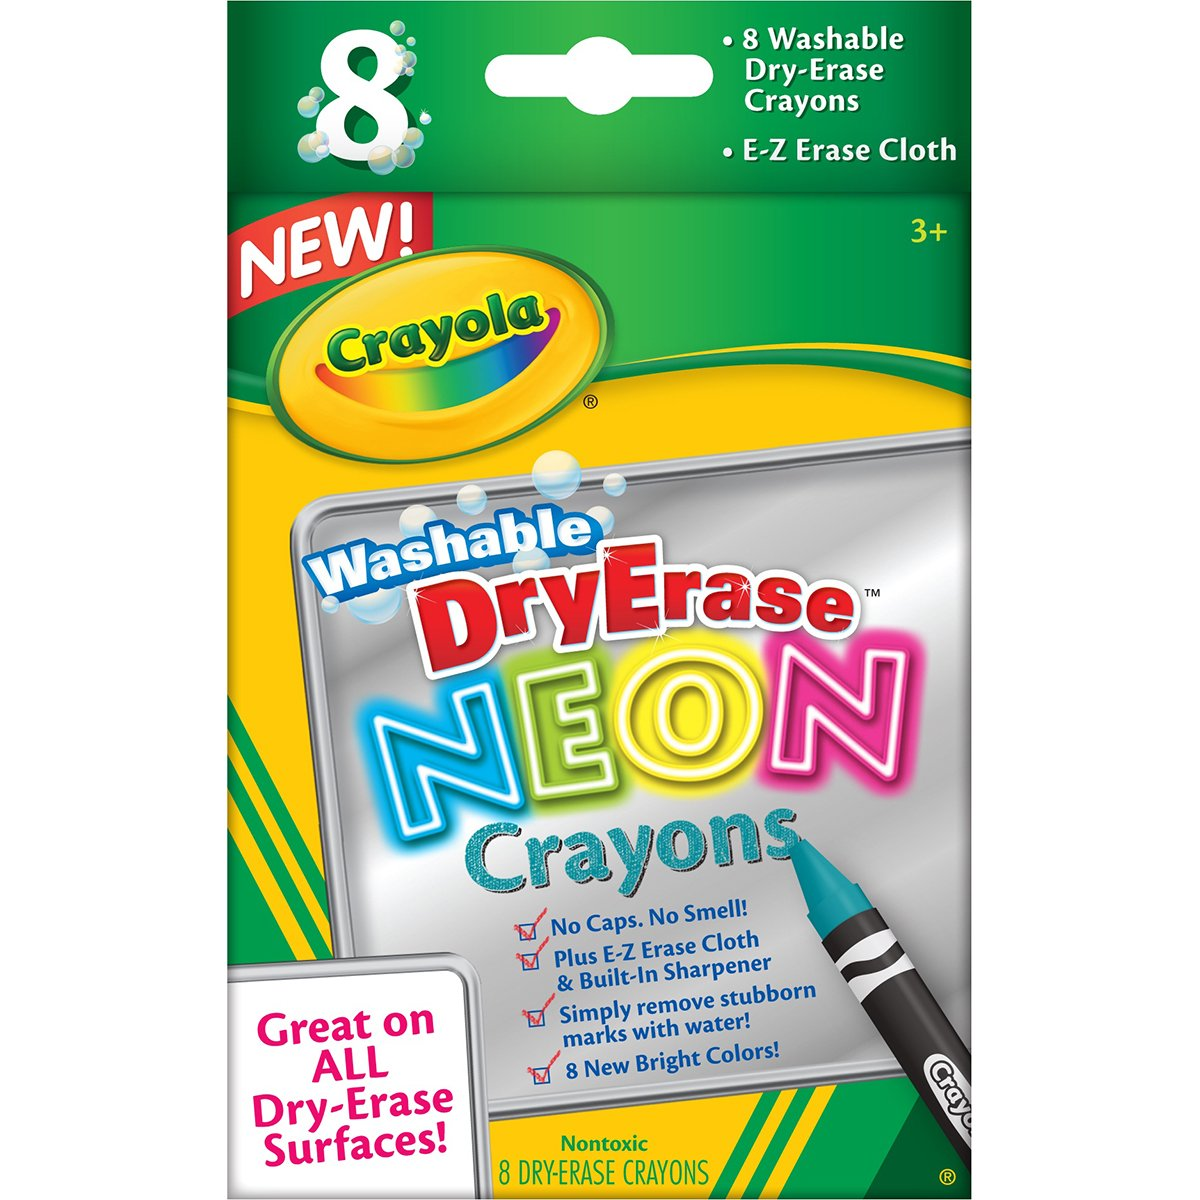 Crayola; Dry-Erase Neon Crayons; Art Tools; 8 Count; Washable; Perfect for Classroom Art Activities; Includes Sharpener and Erase Cloth Binney & Smith 98-8605